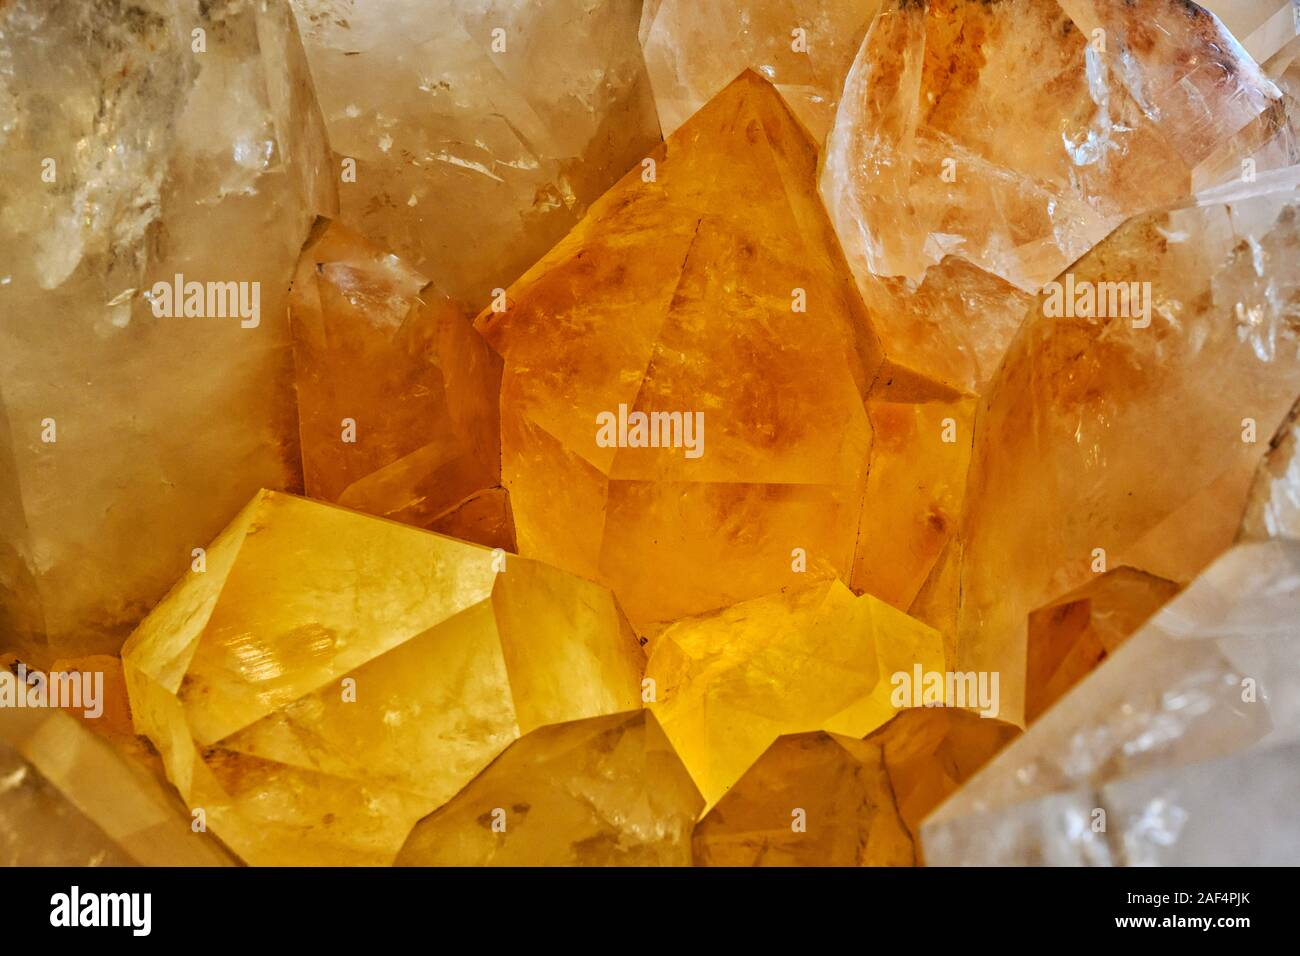 Closeup of large quartz crystal cluster from Arkansas Stock Photo